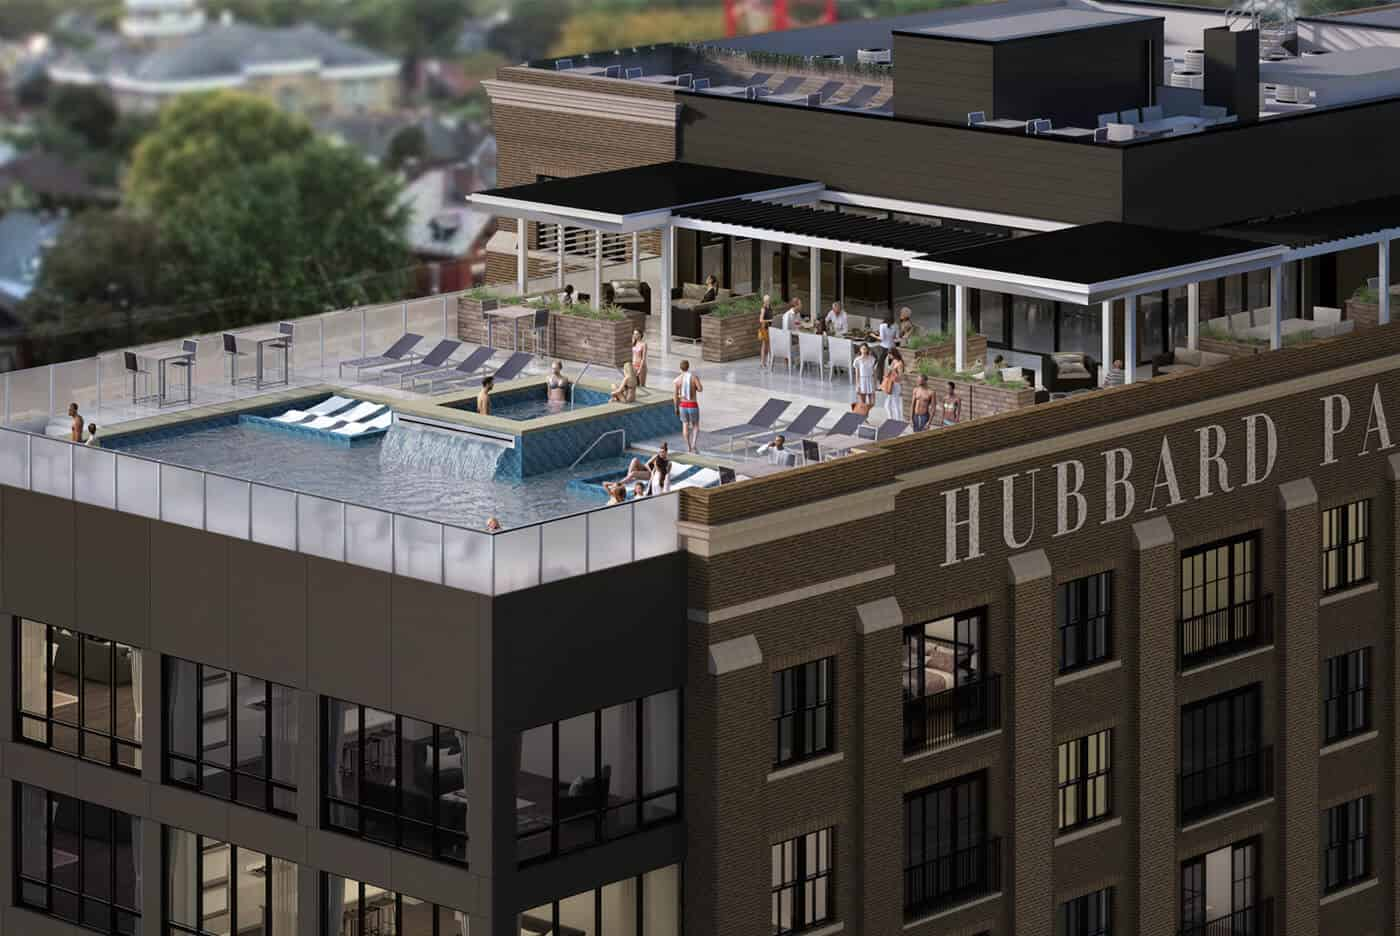 Hubbard_Park_Place_Short_North_Apartment_Office_Rooftop_Deck_Bar_Pool_Lounge_Residential